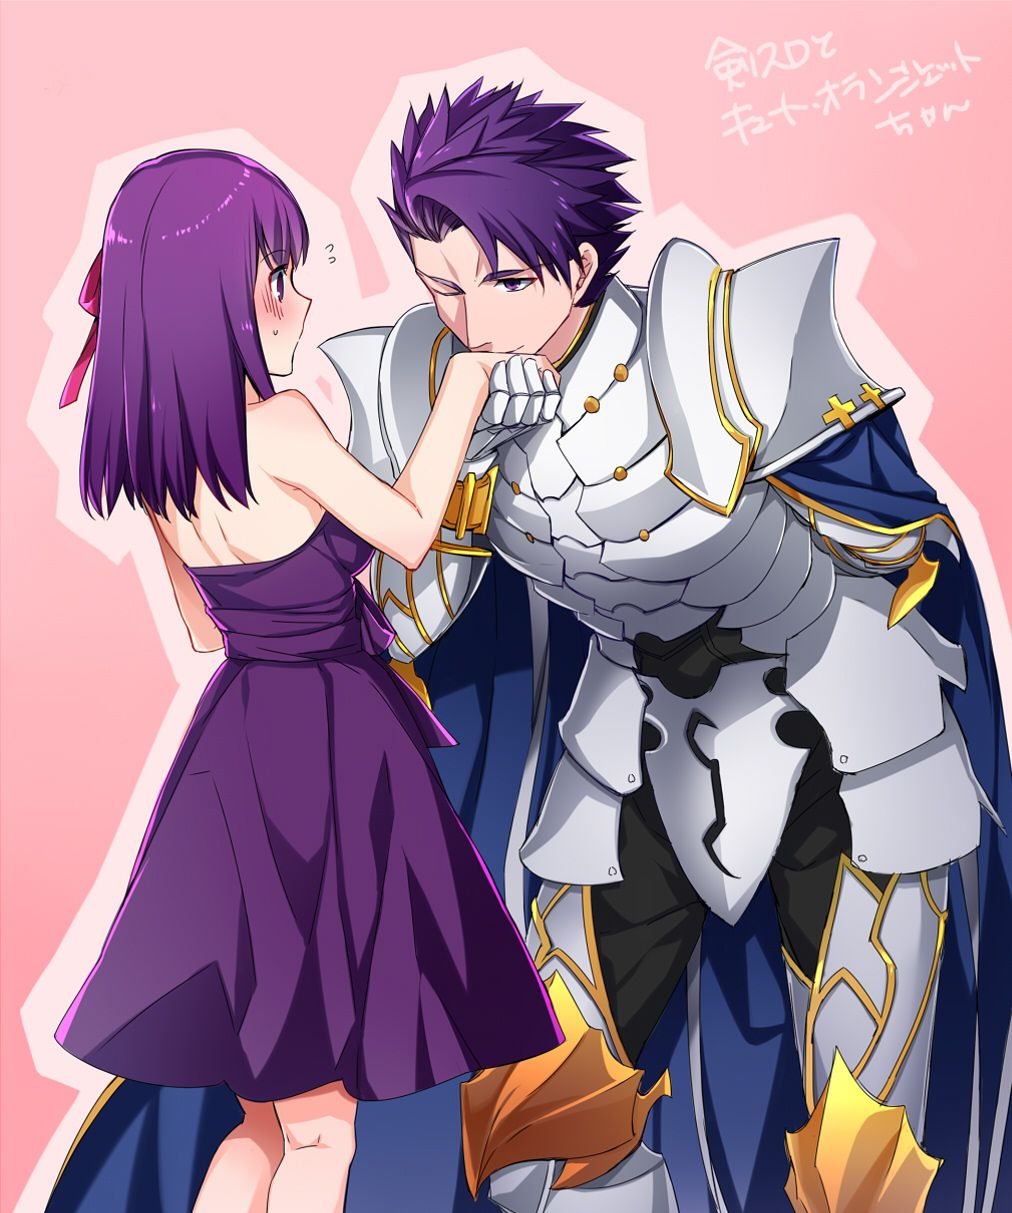 Sakura Matou Lancelot Fate Grand Order Fate Fate Stay Night Anime Fate Anime Series